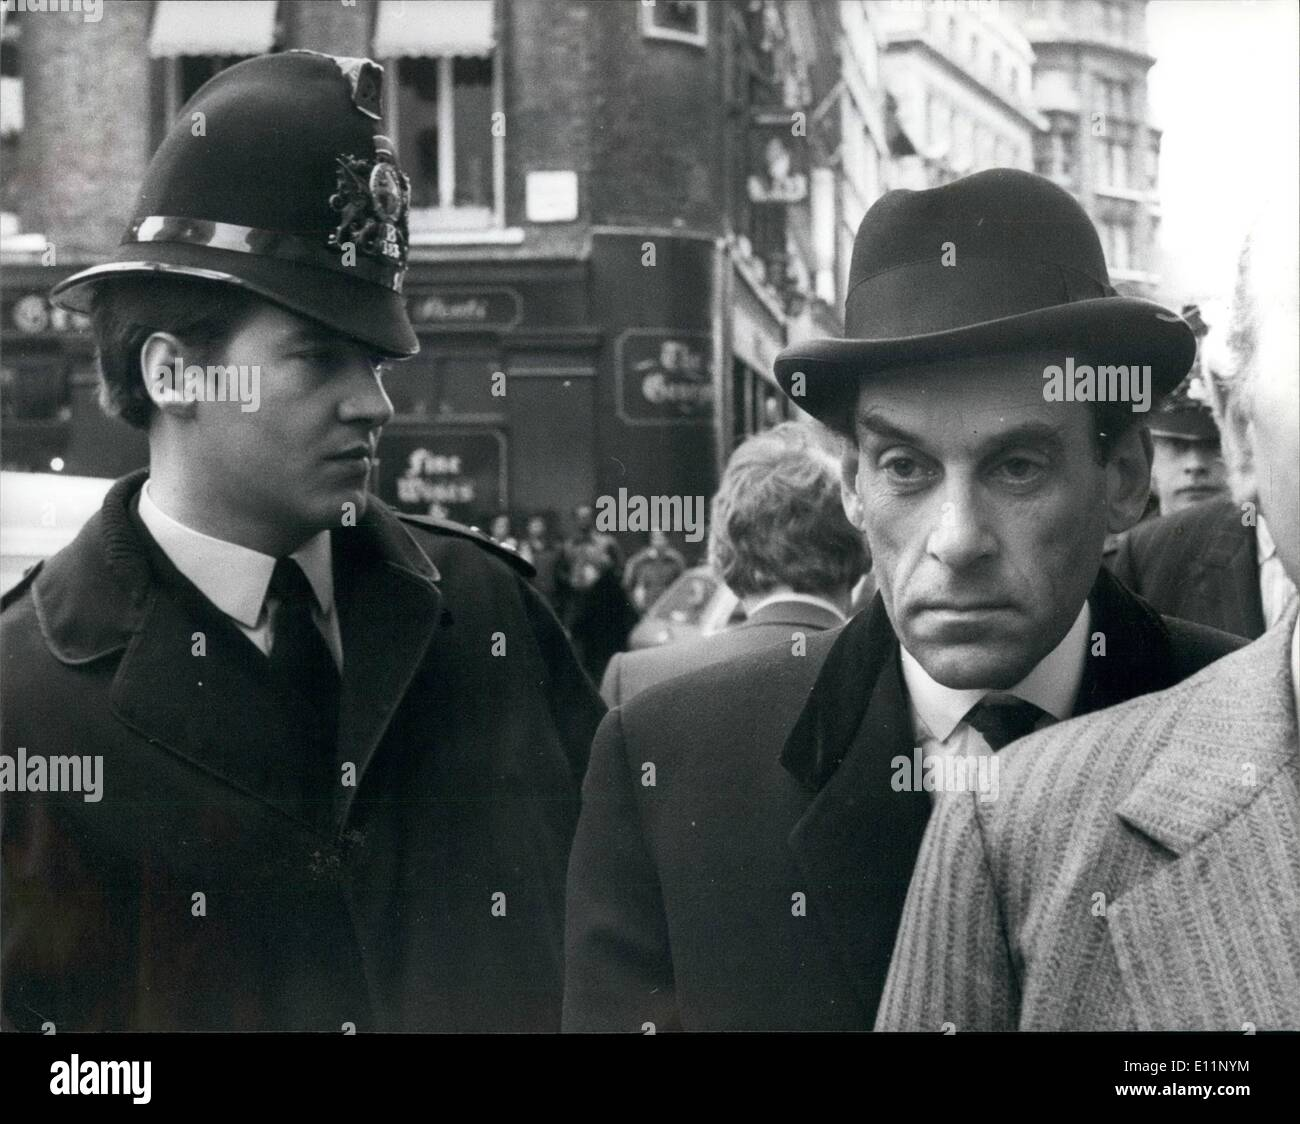 May 05, 1979 - Jeremy Thorpe arrives at the Old Bailey: Arriving at the Central Criminal Court (Old Bailey) for Stock Photo